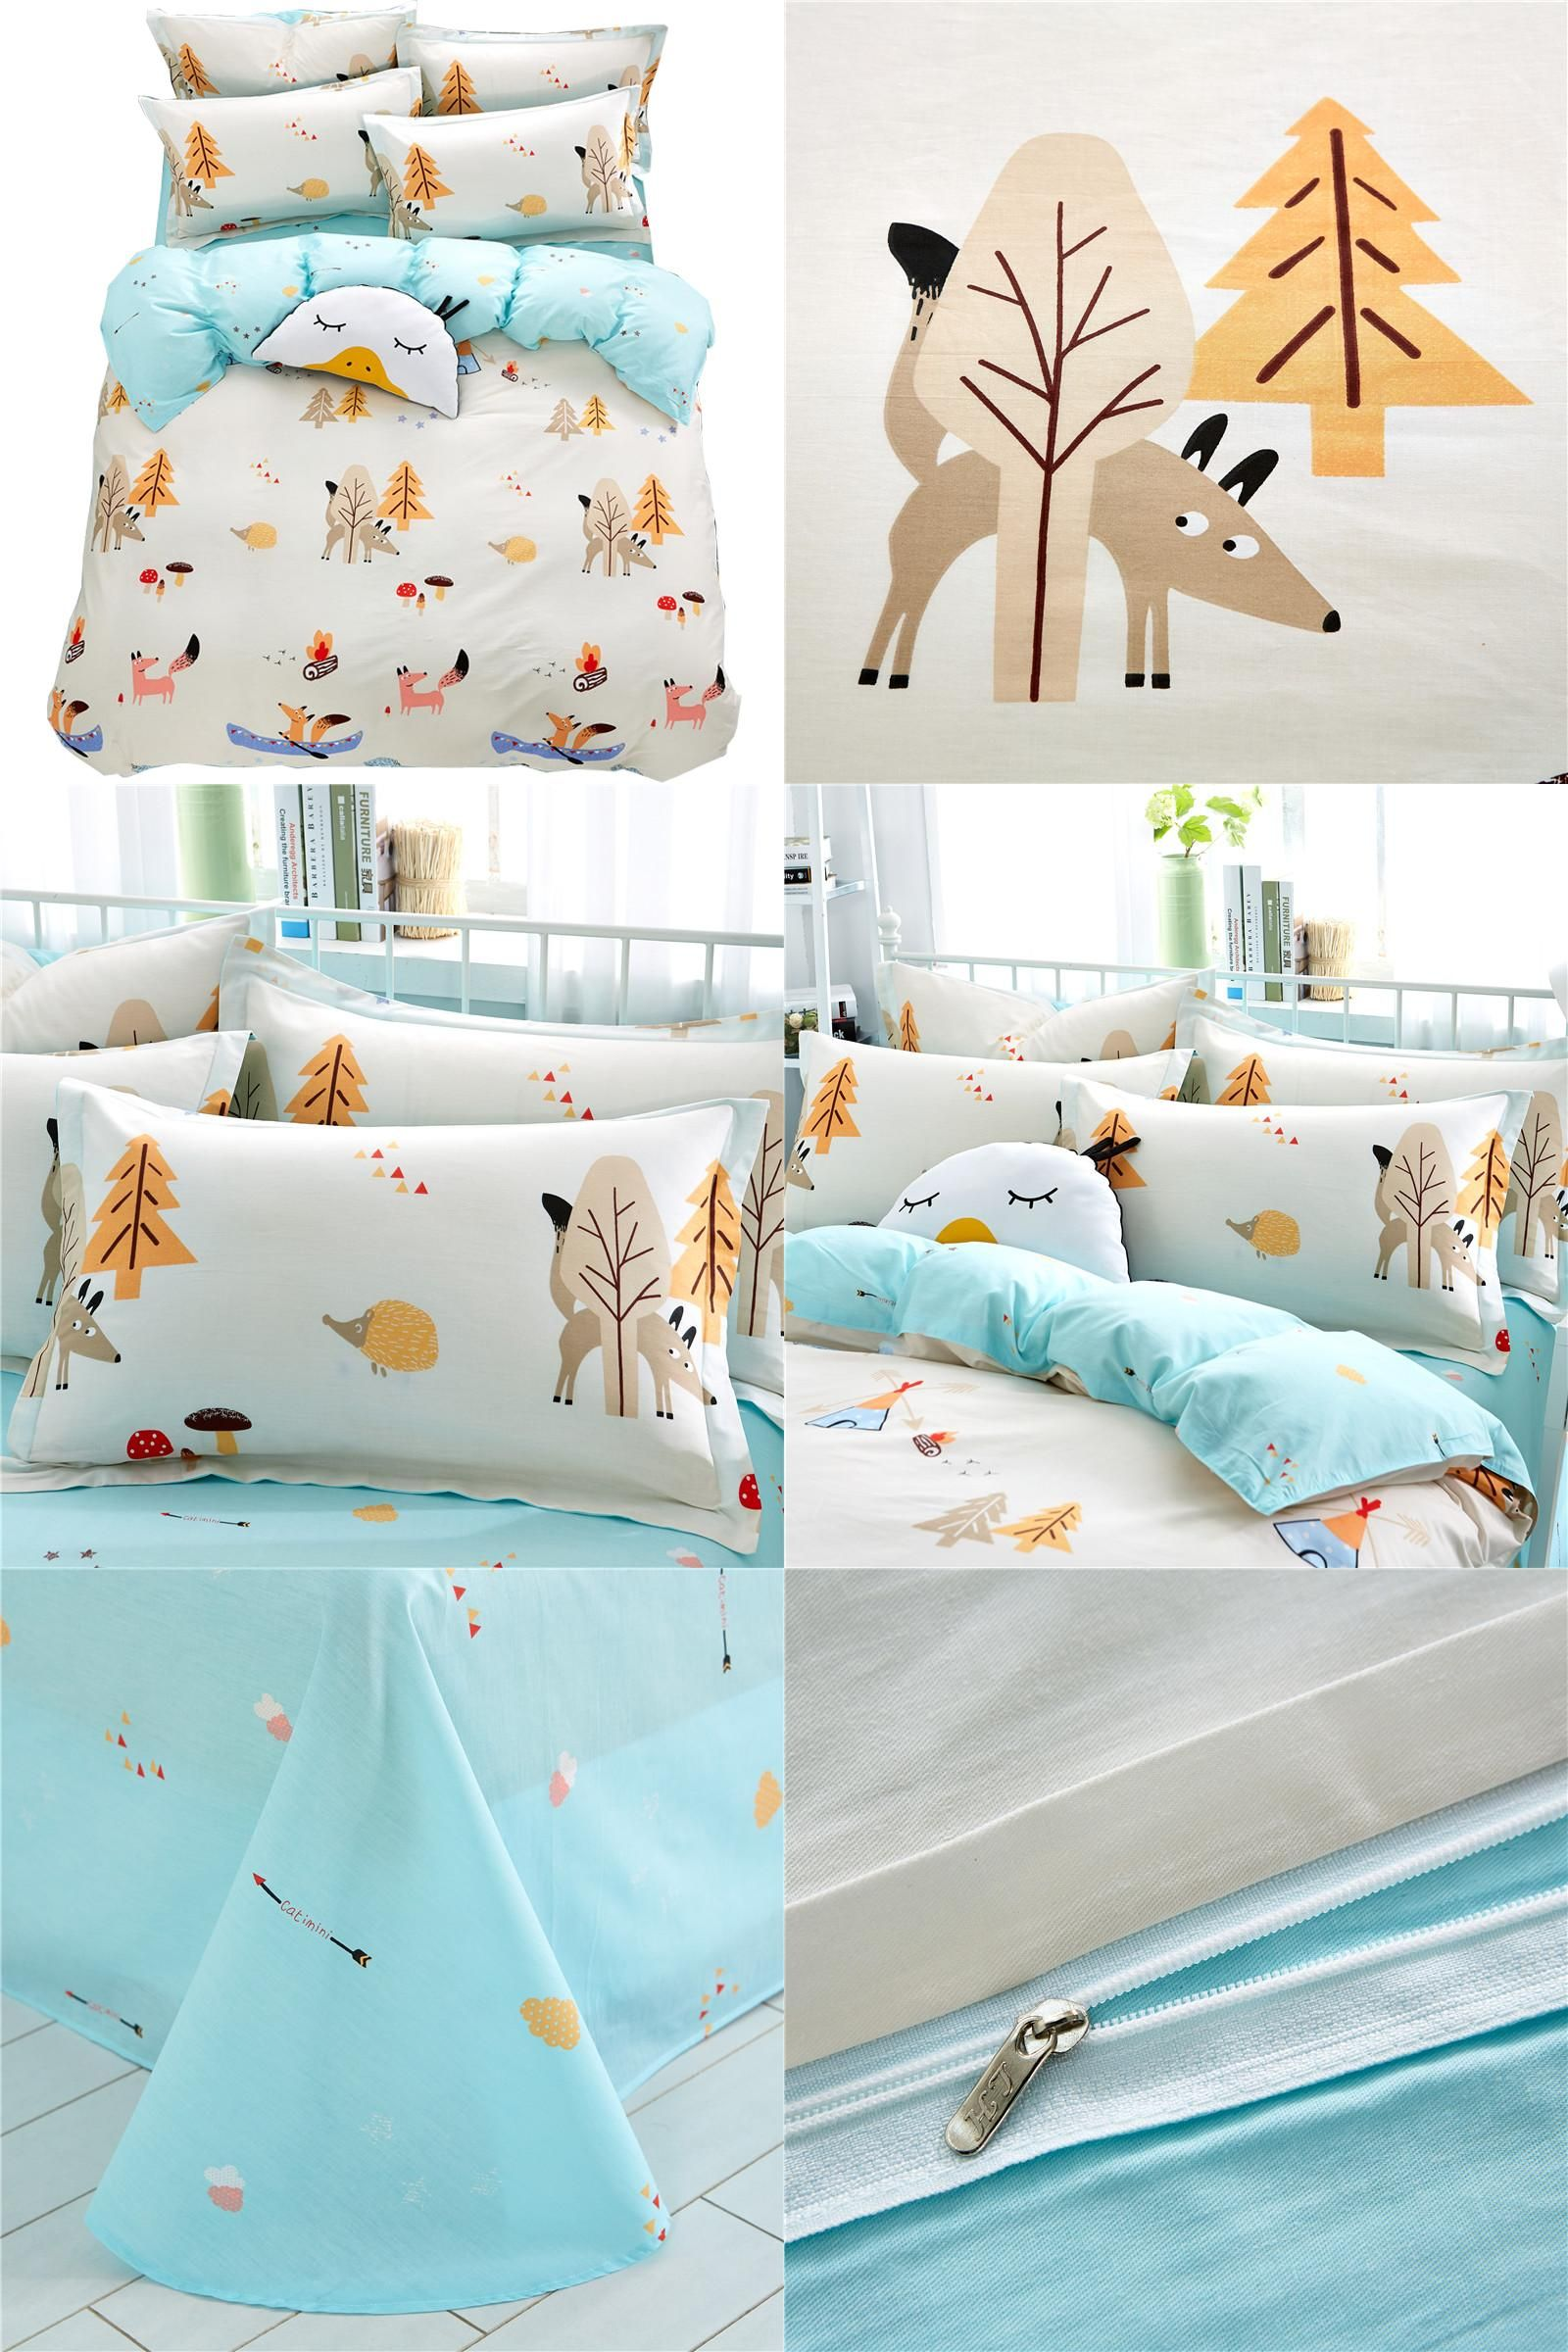 cover sheridan a snow white duvet set millennia online where at to luxdeco buy